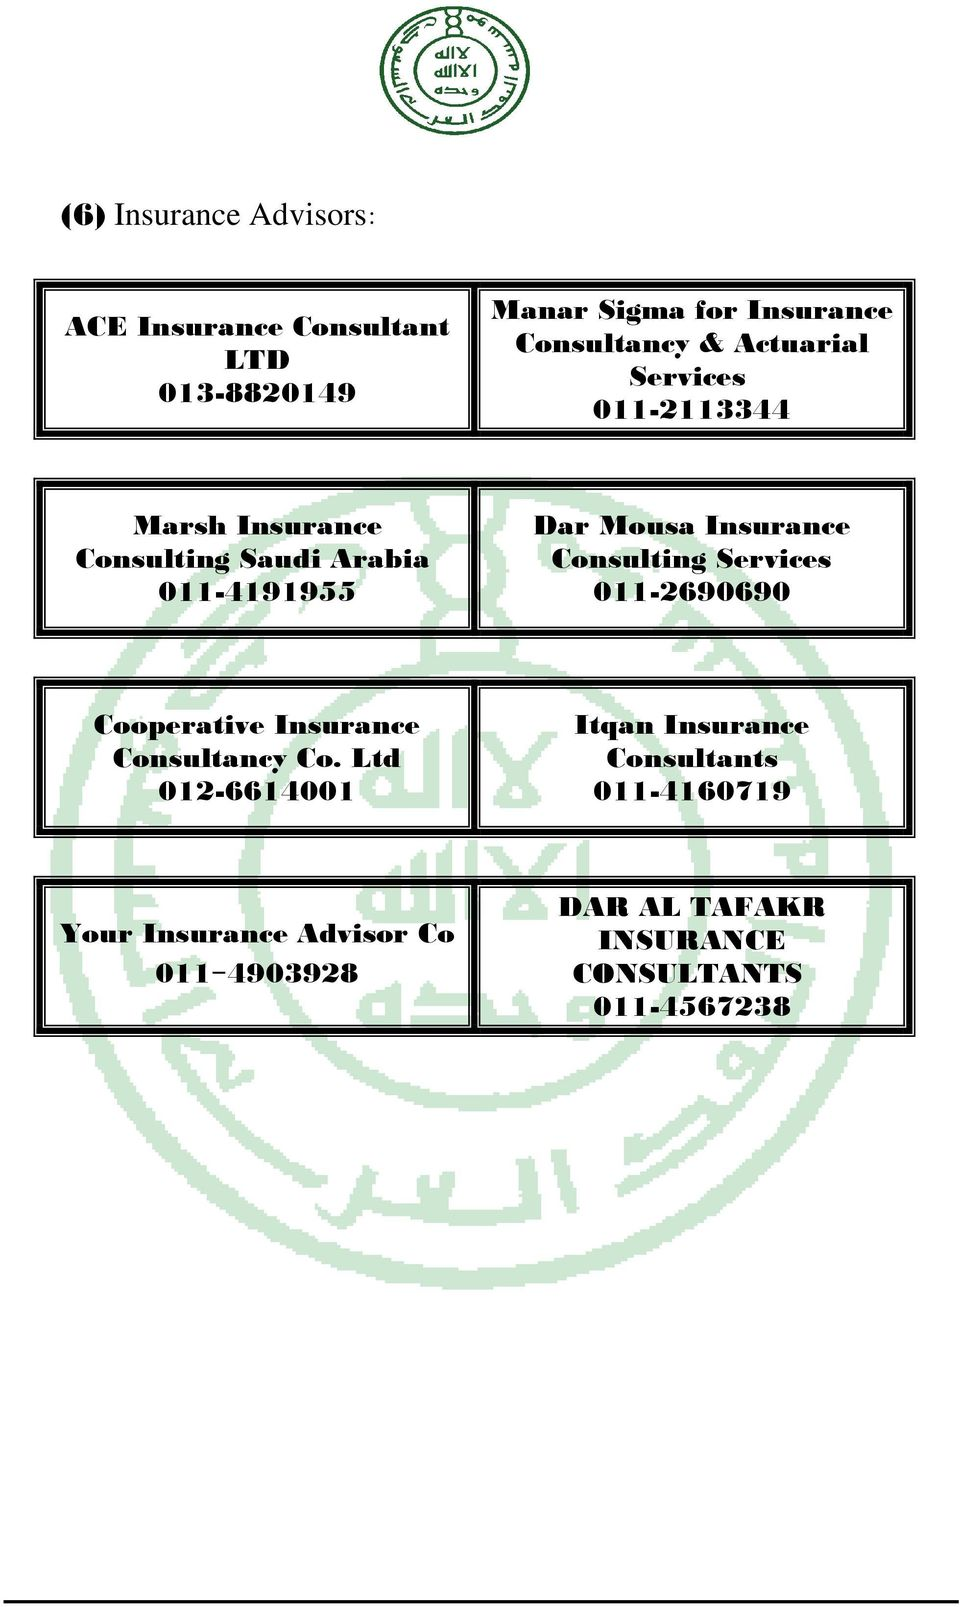 Dar Mousa Insurance Consulting Services 011-2690690 Consultancy Co.